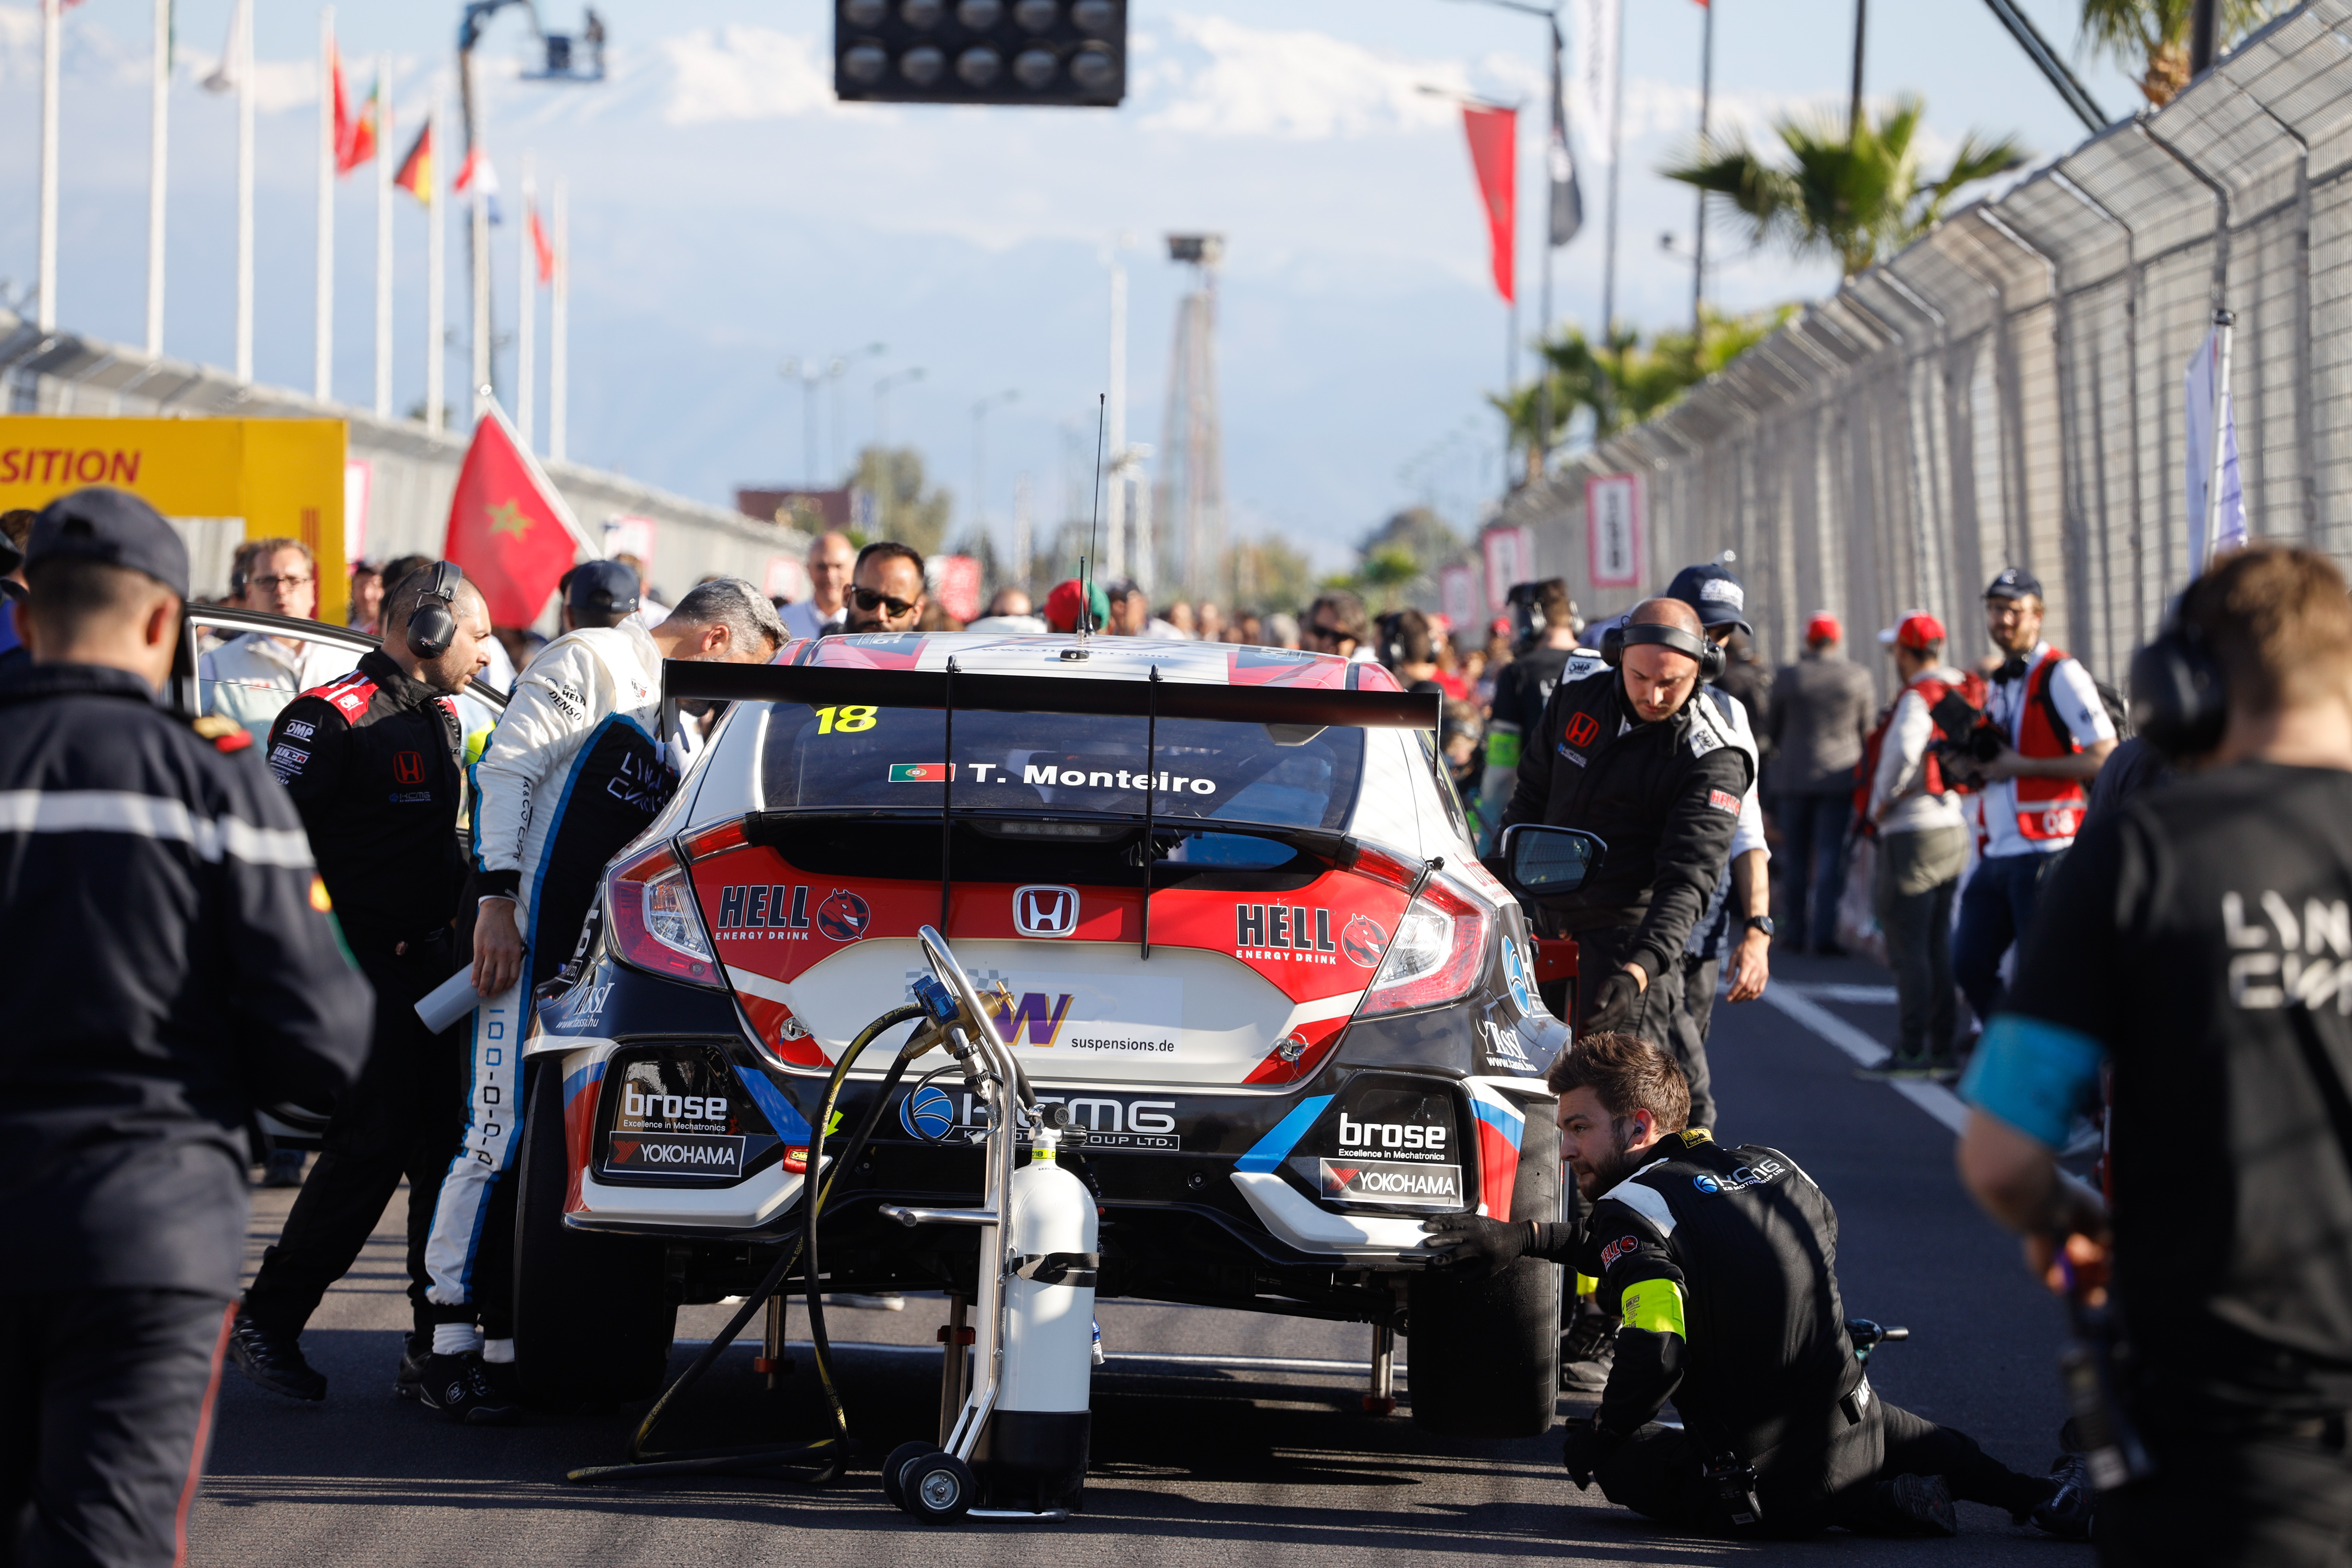 Back to normal and back at the Ring: WTCR's Monteiro keeps racing